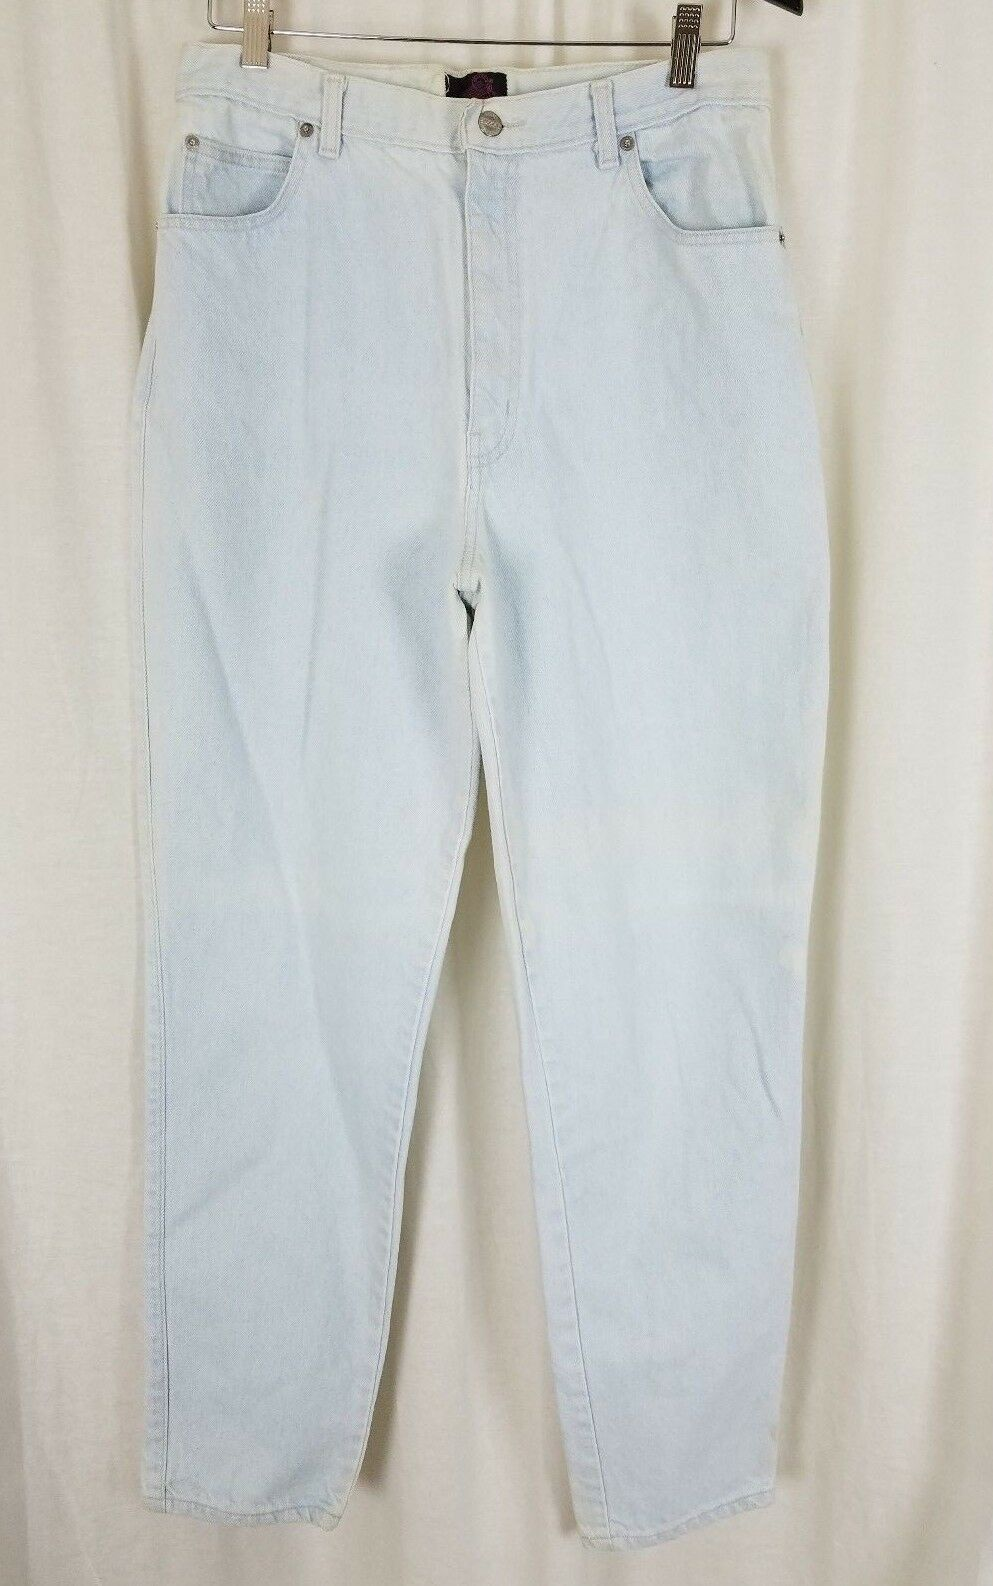 Vintage Sasson High Waist Tapered White Washed Mom Jeans Womens 15 16 Denim bluee